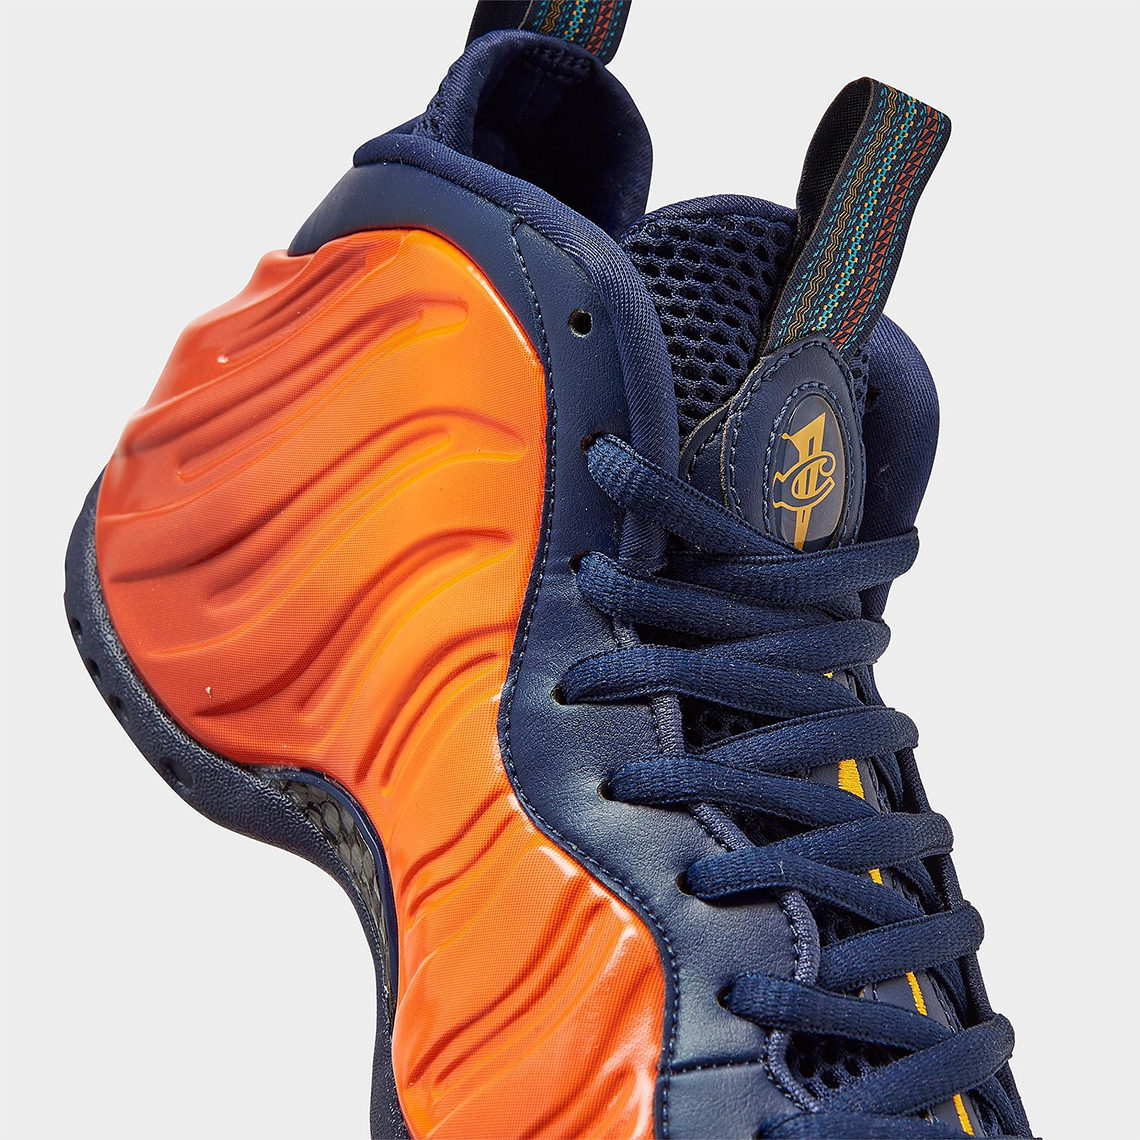 Nike Womens Air Foamposite One 1 Shine? Iridescent STYLE